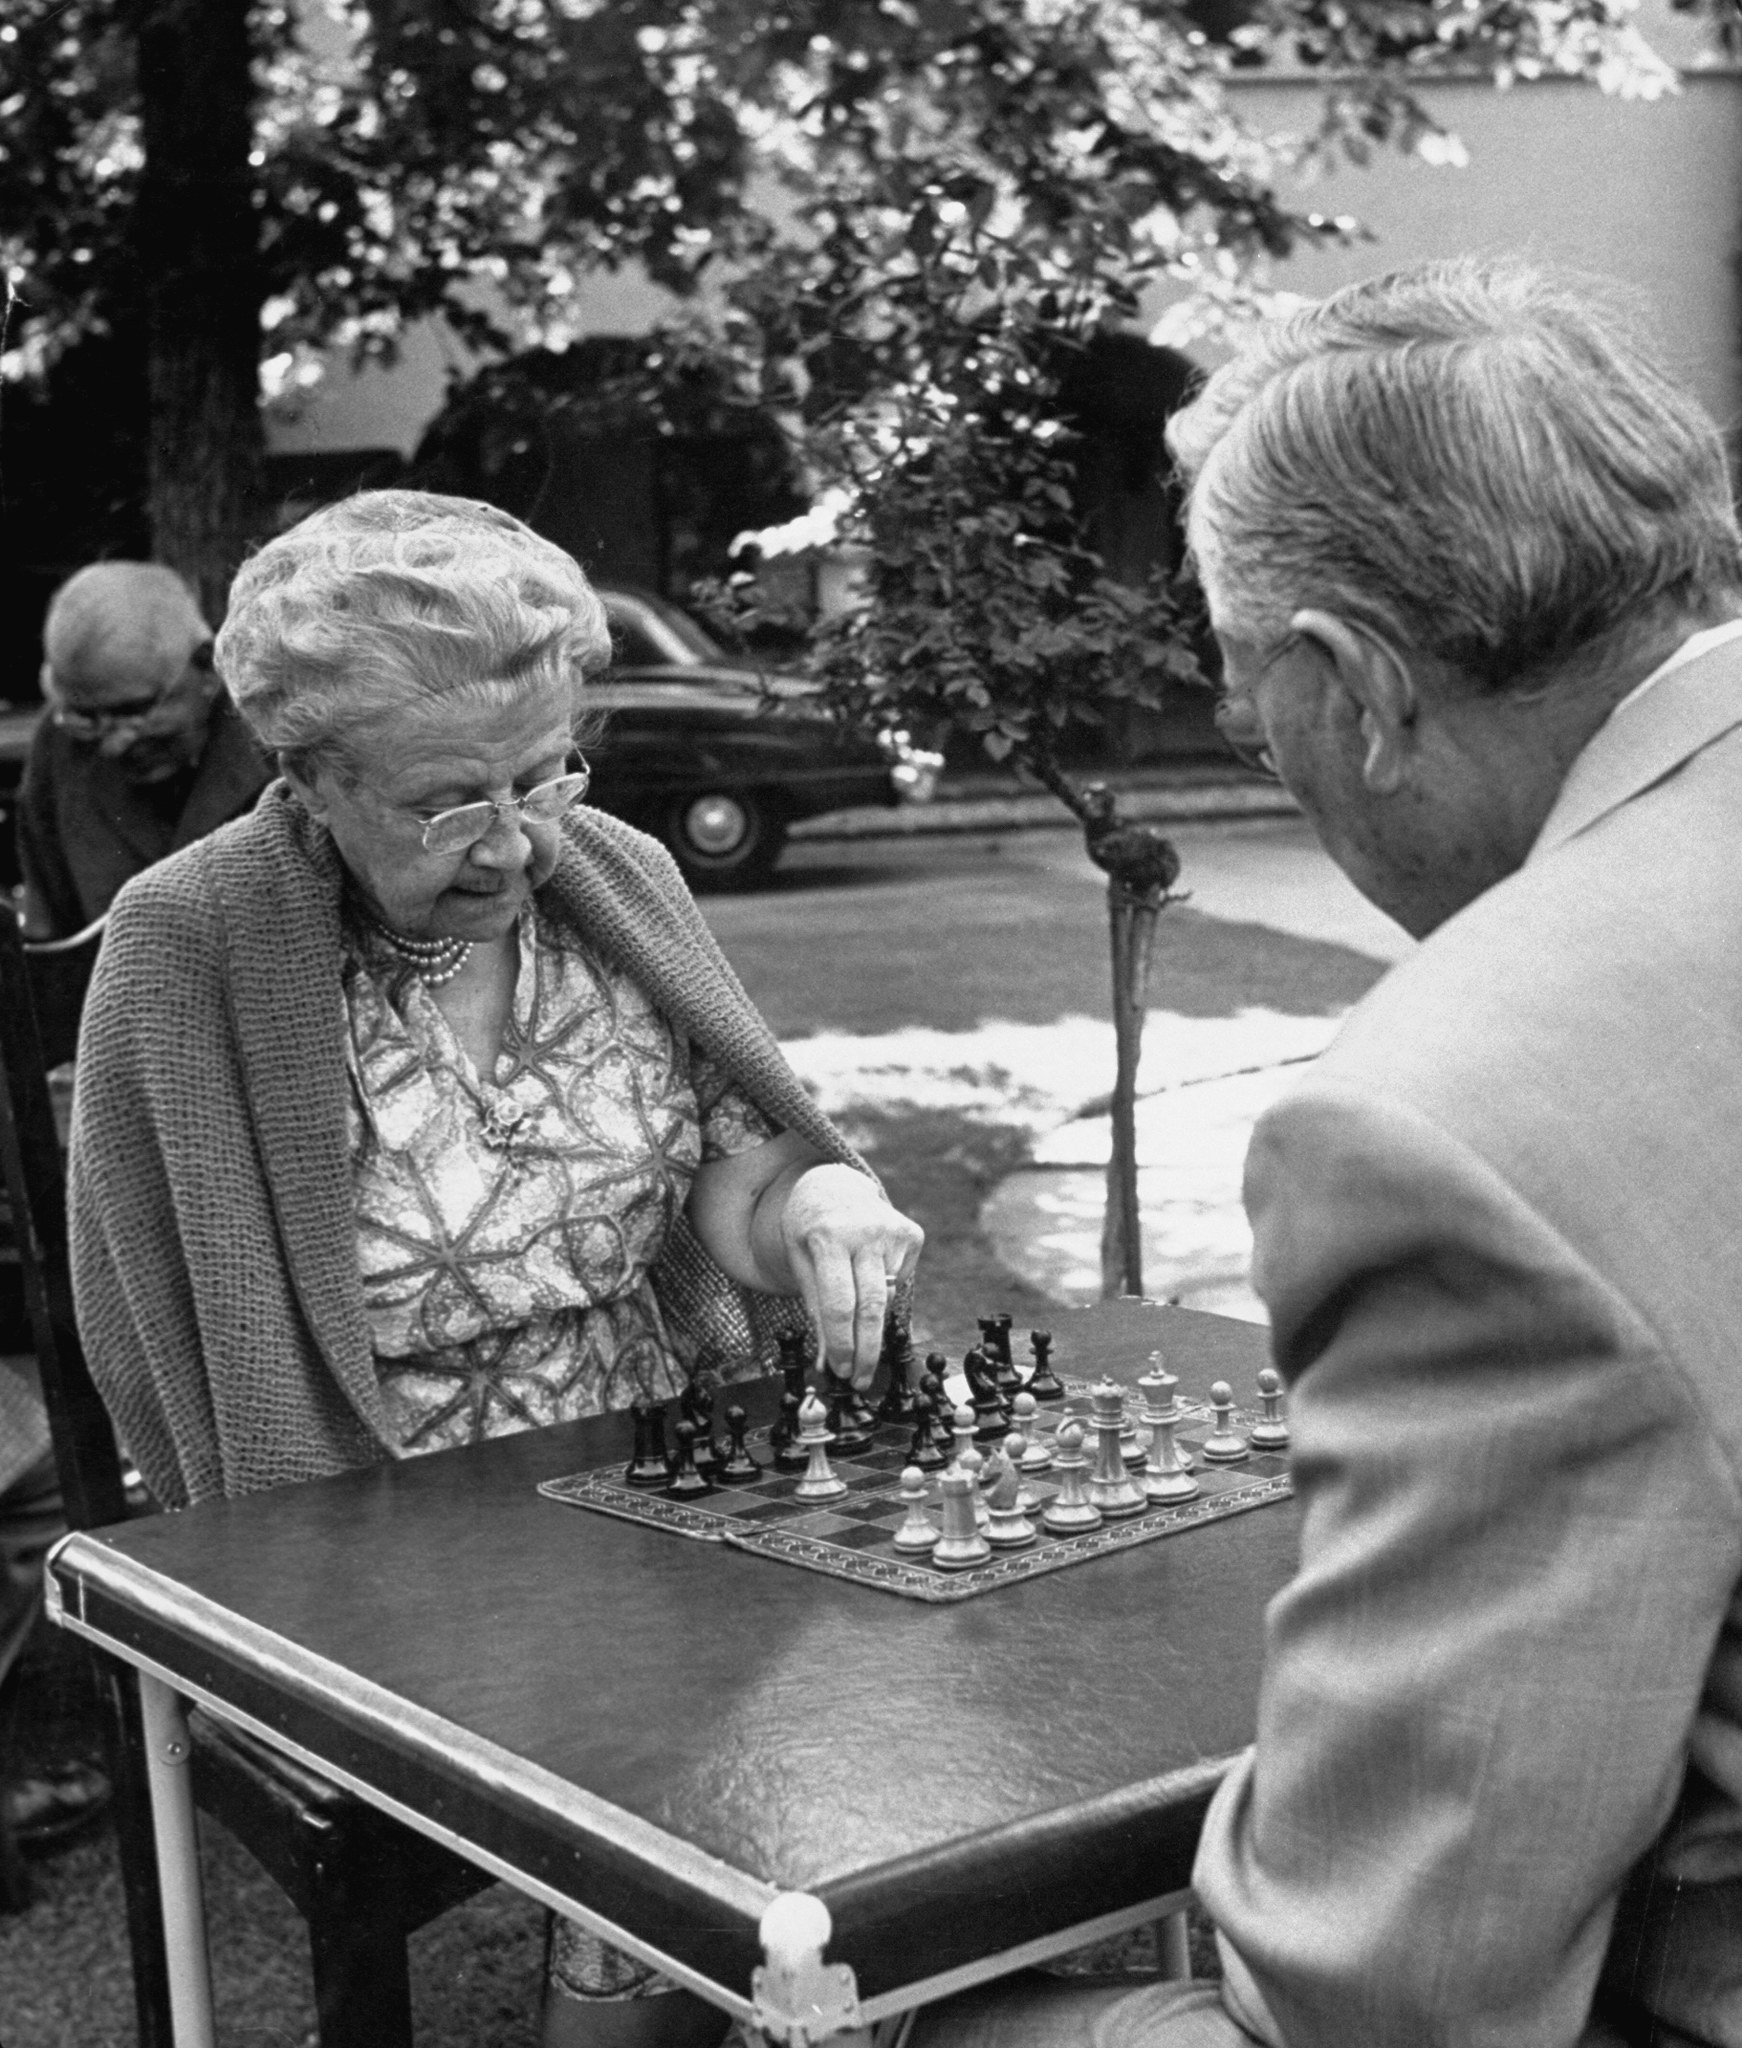 An older woman and an older man play chess outside on a sunny day